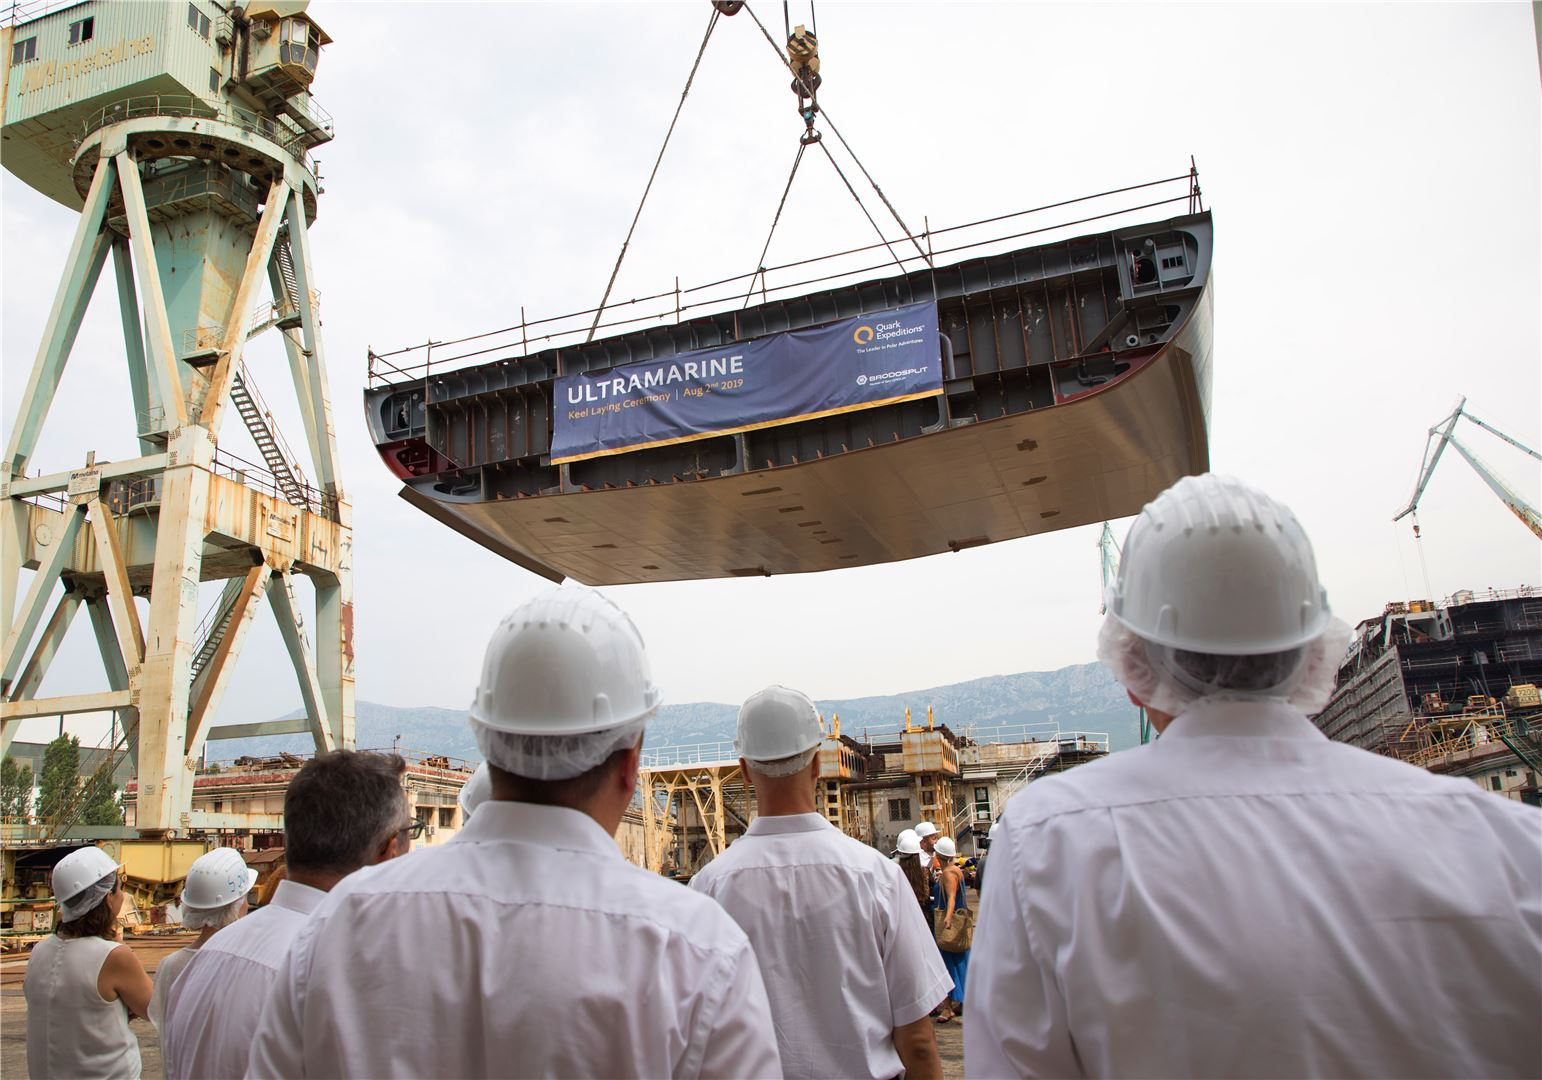 Quark Expeditions Celebrates Keel-Laying for New Ship Ultramarine